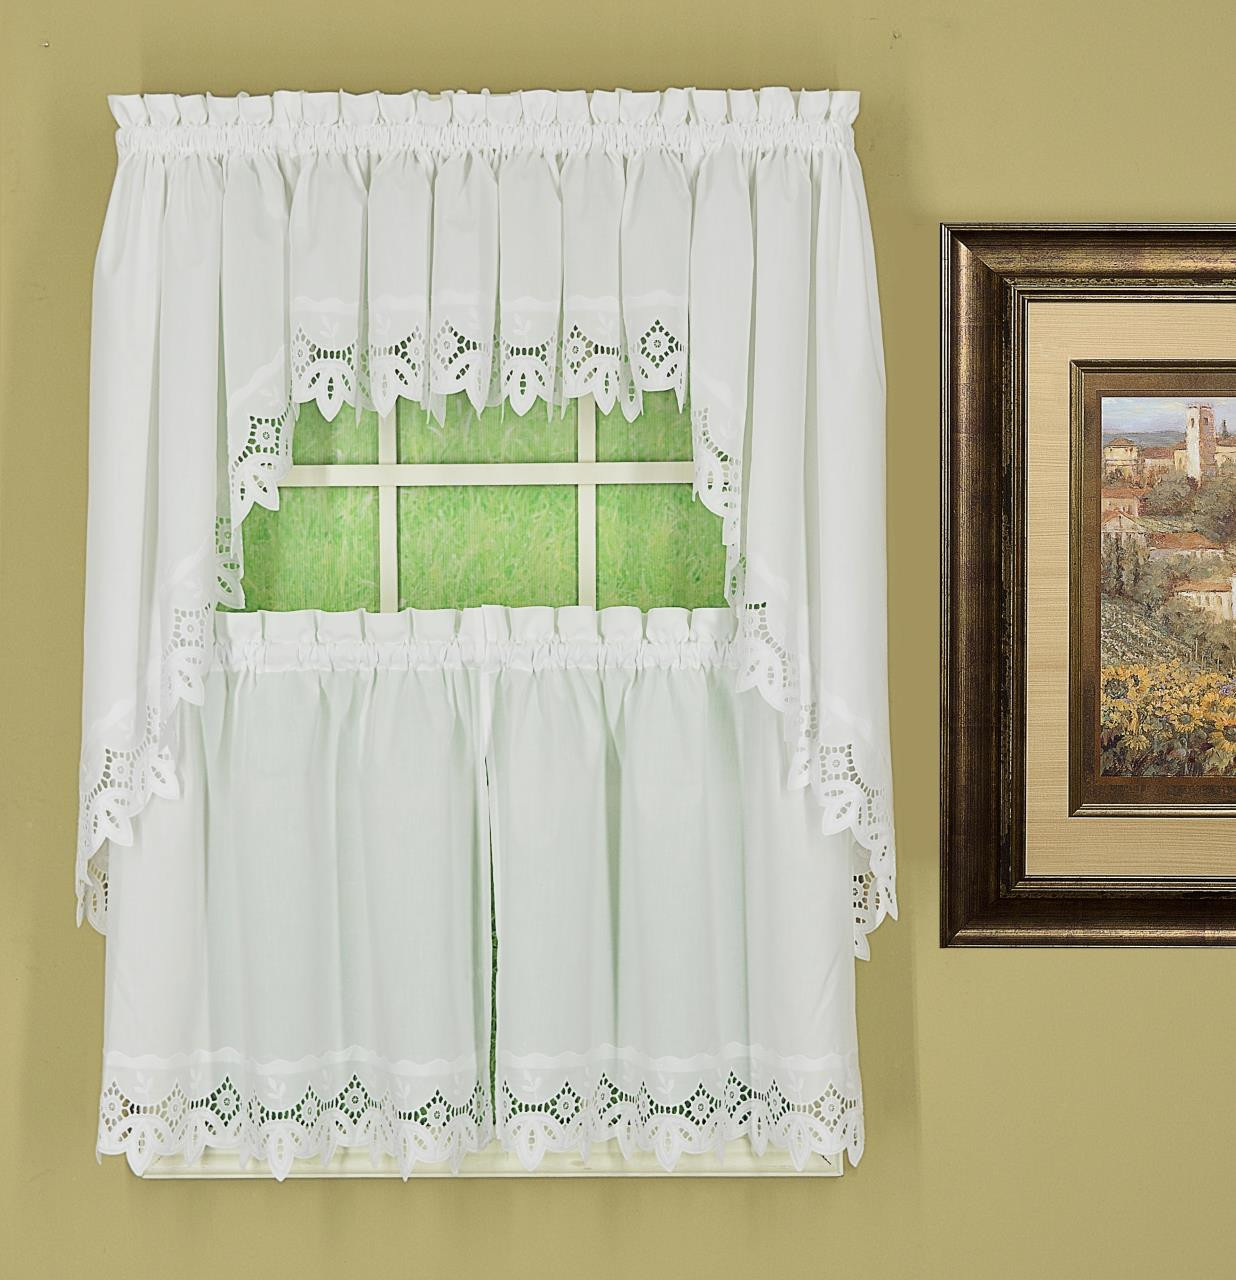 Heirloom Eyelet Lace Tier Curtains - 647506021933